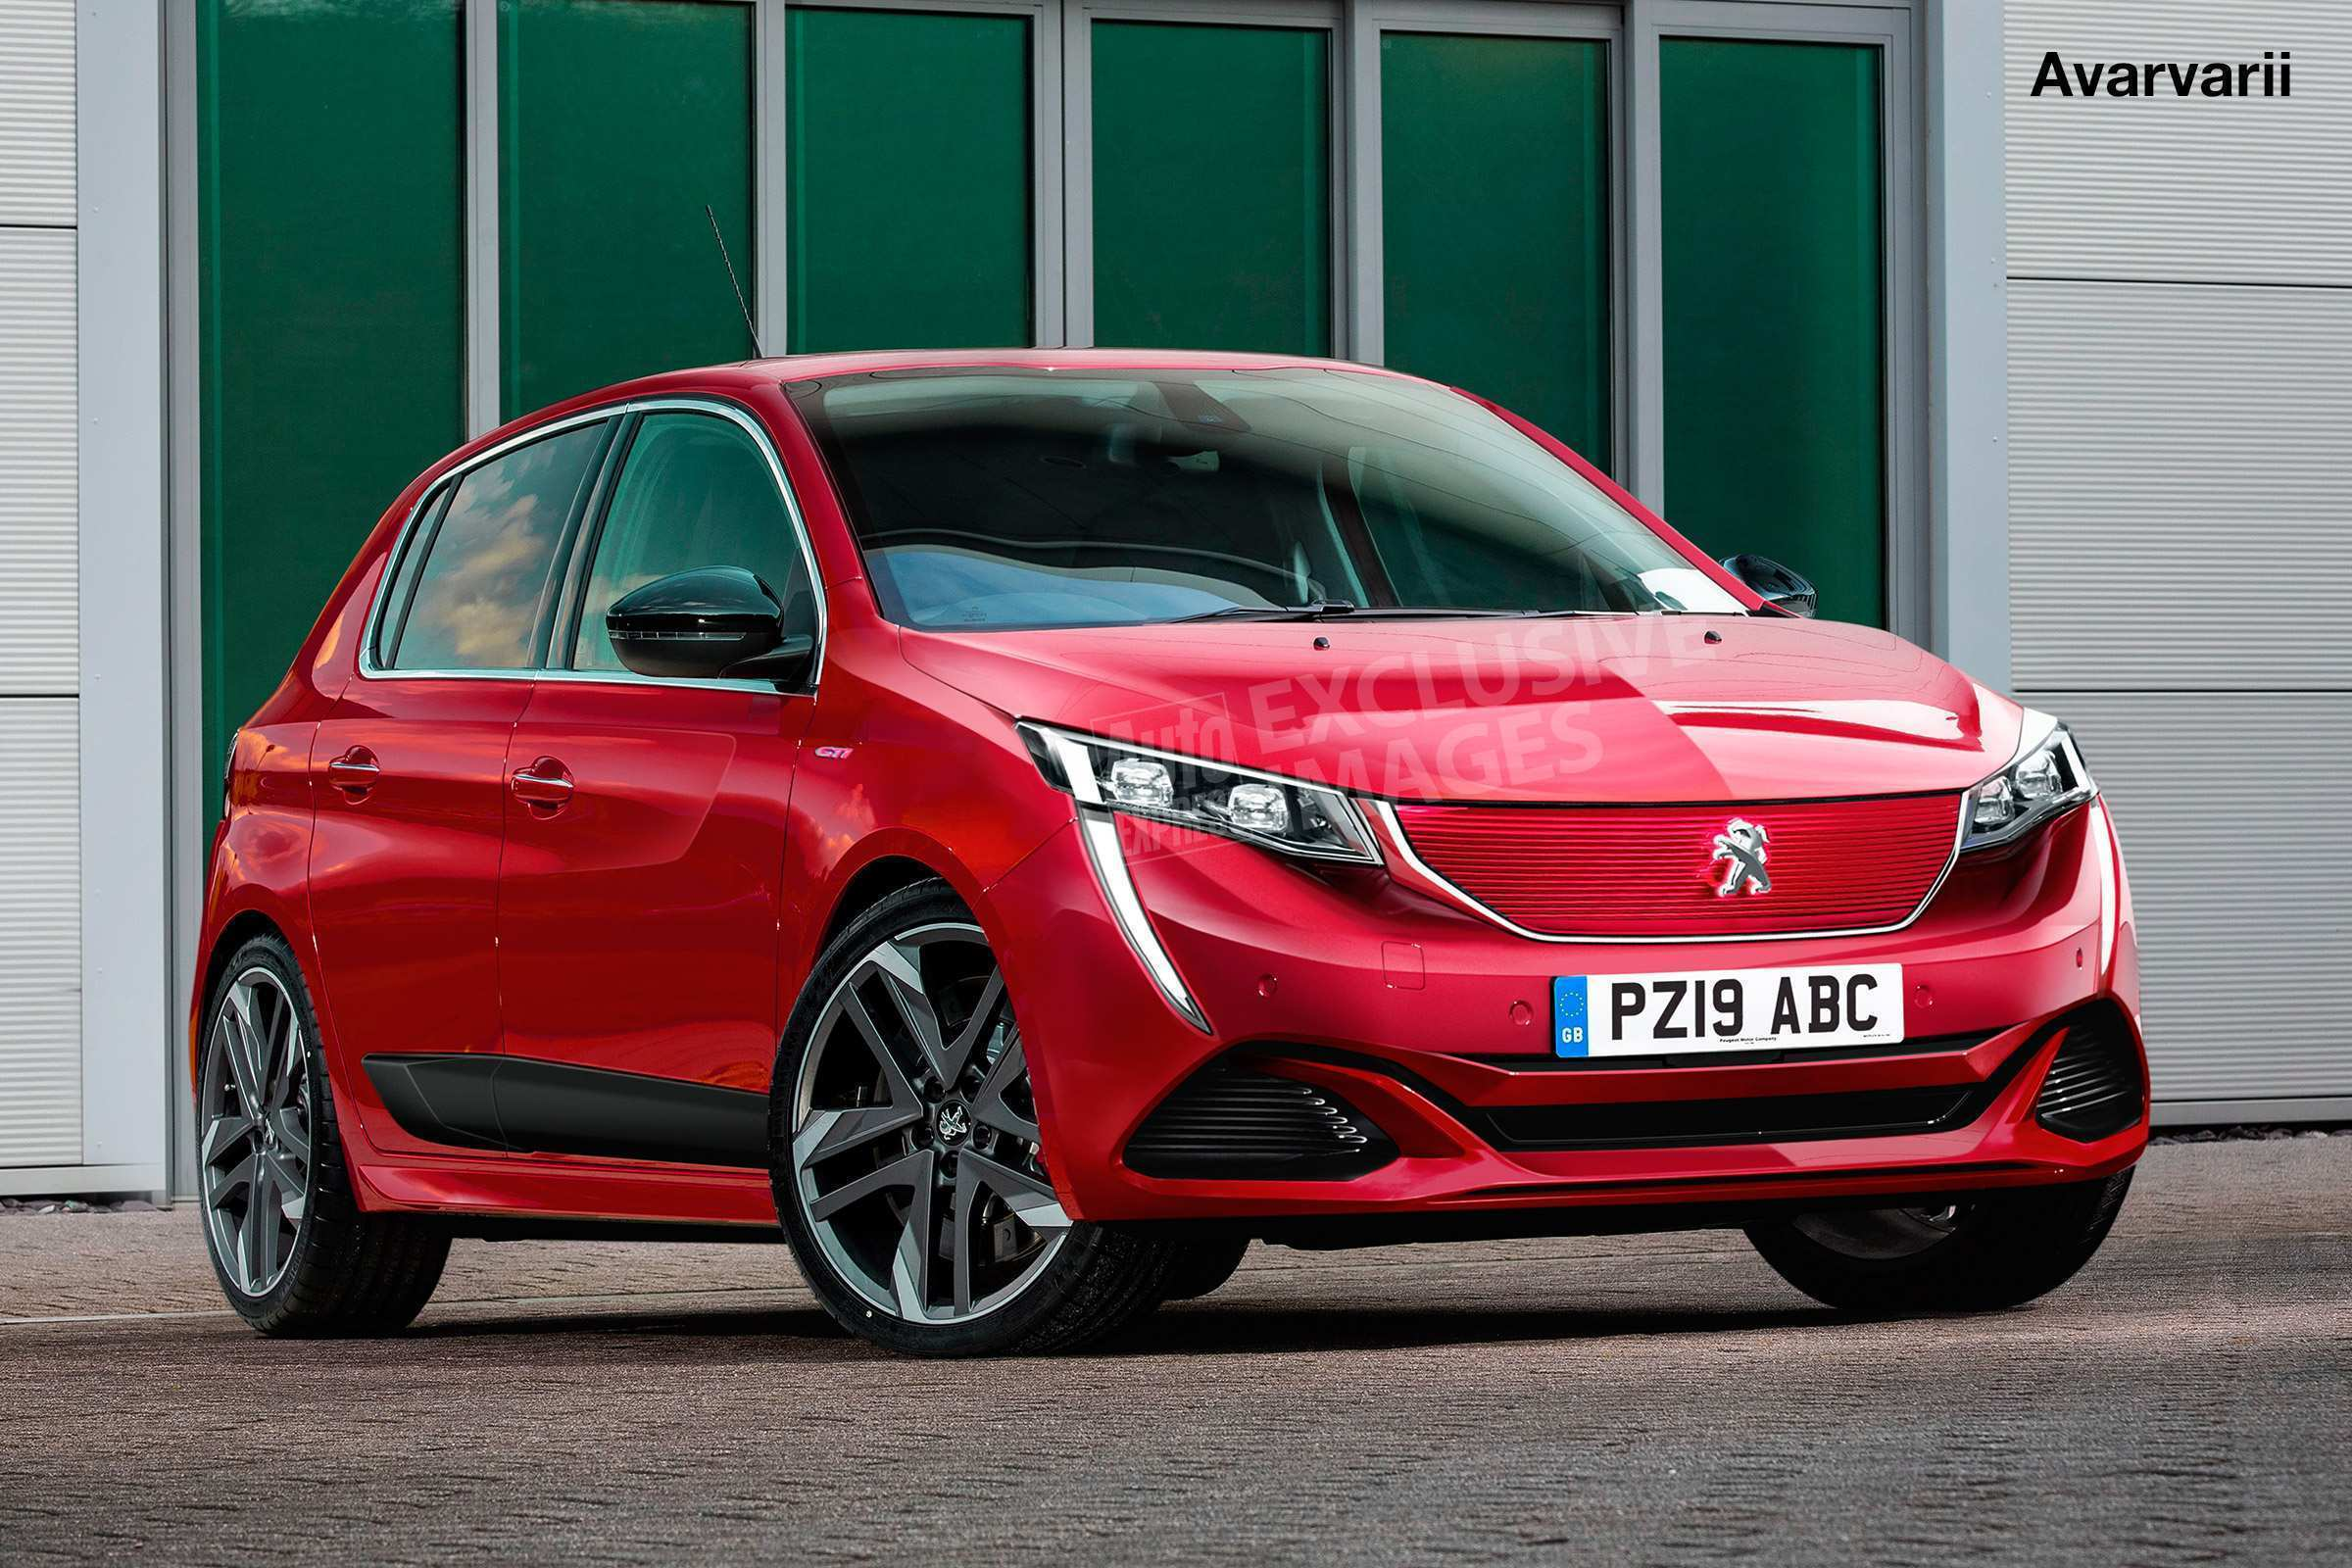 89 Great Peugeot En 2019 Rumors by Peugeot En 2019